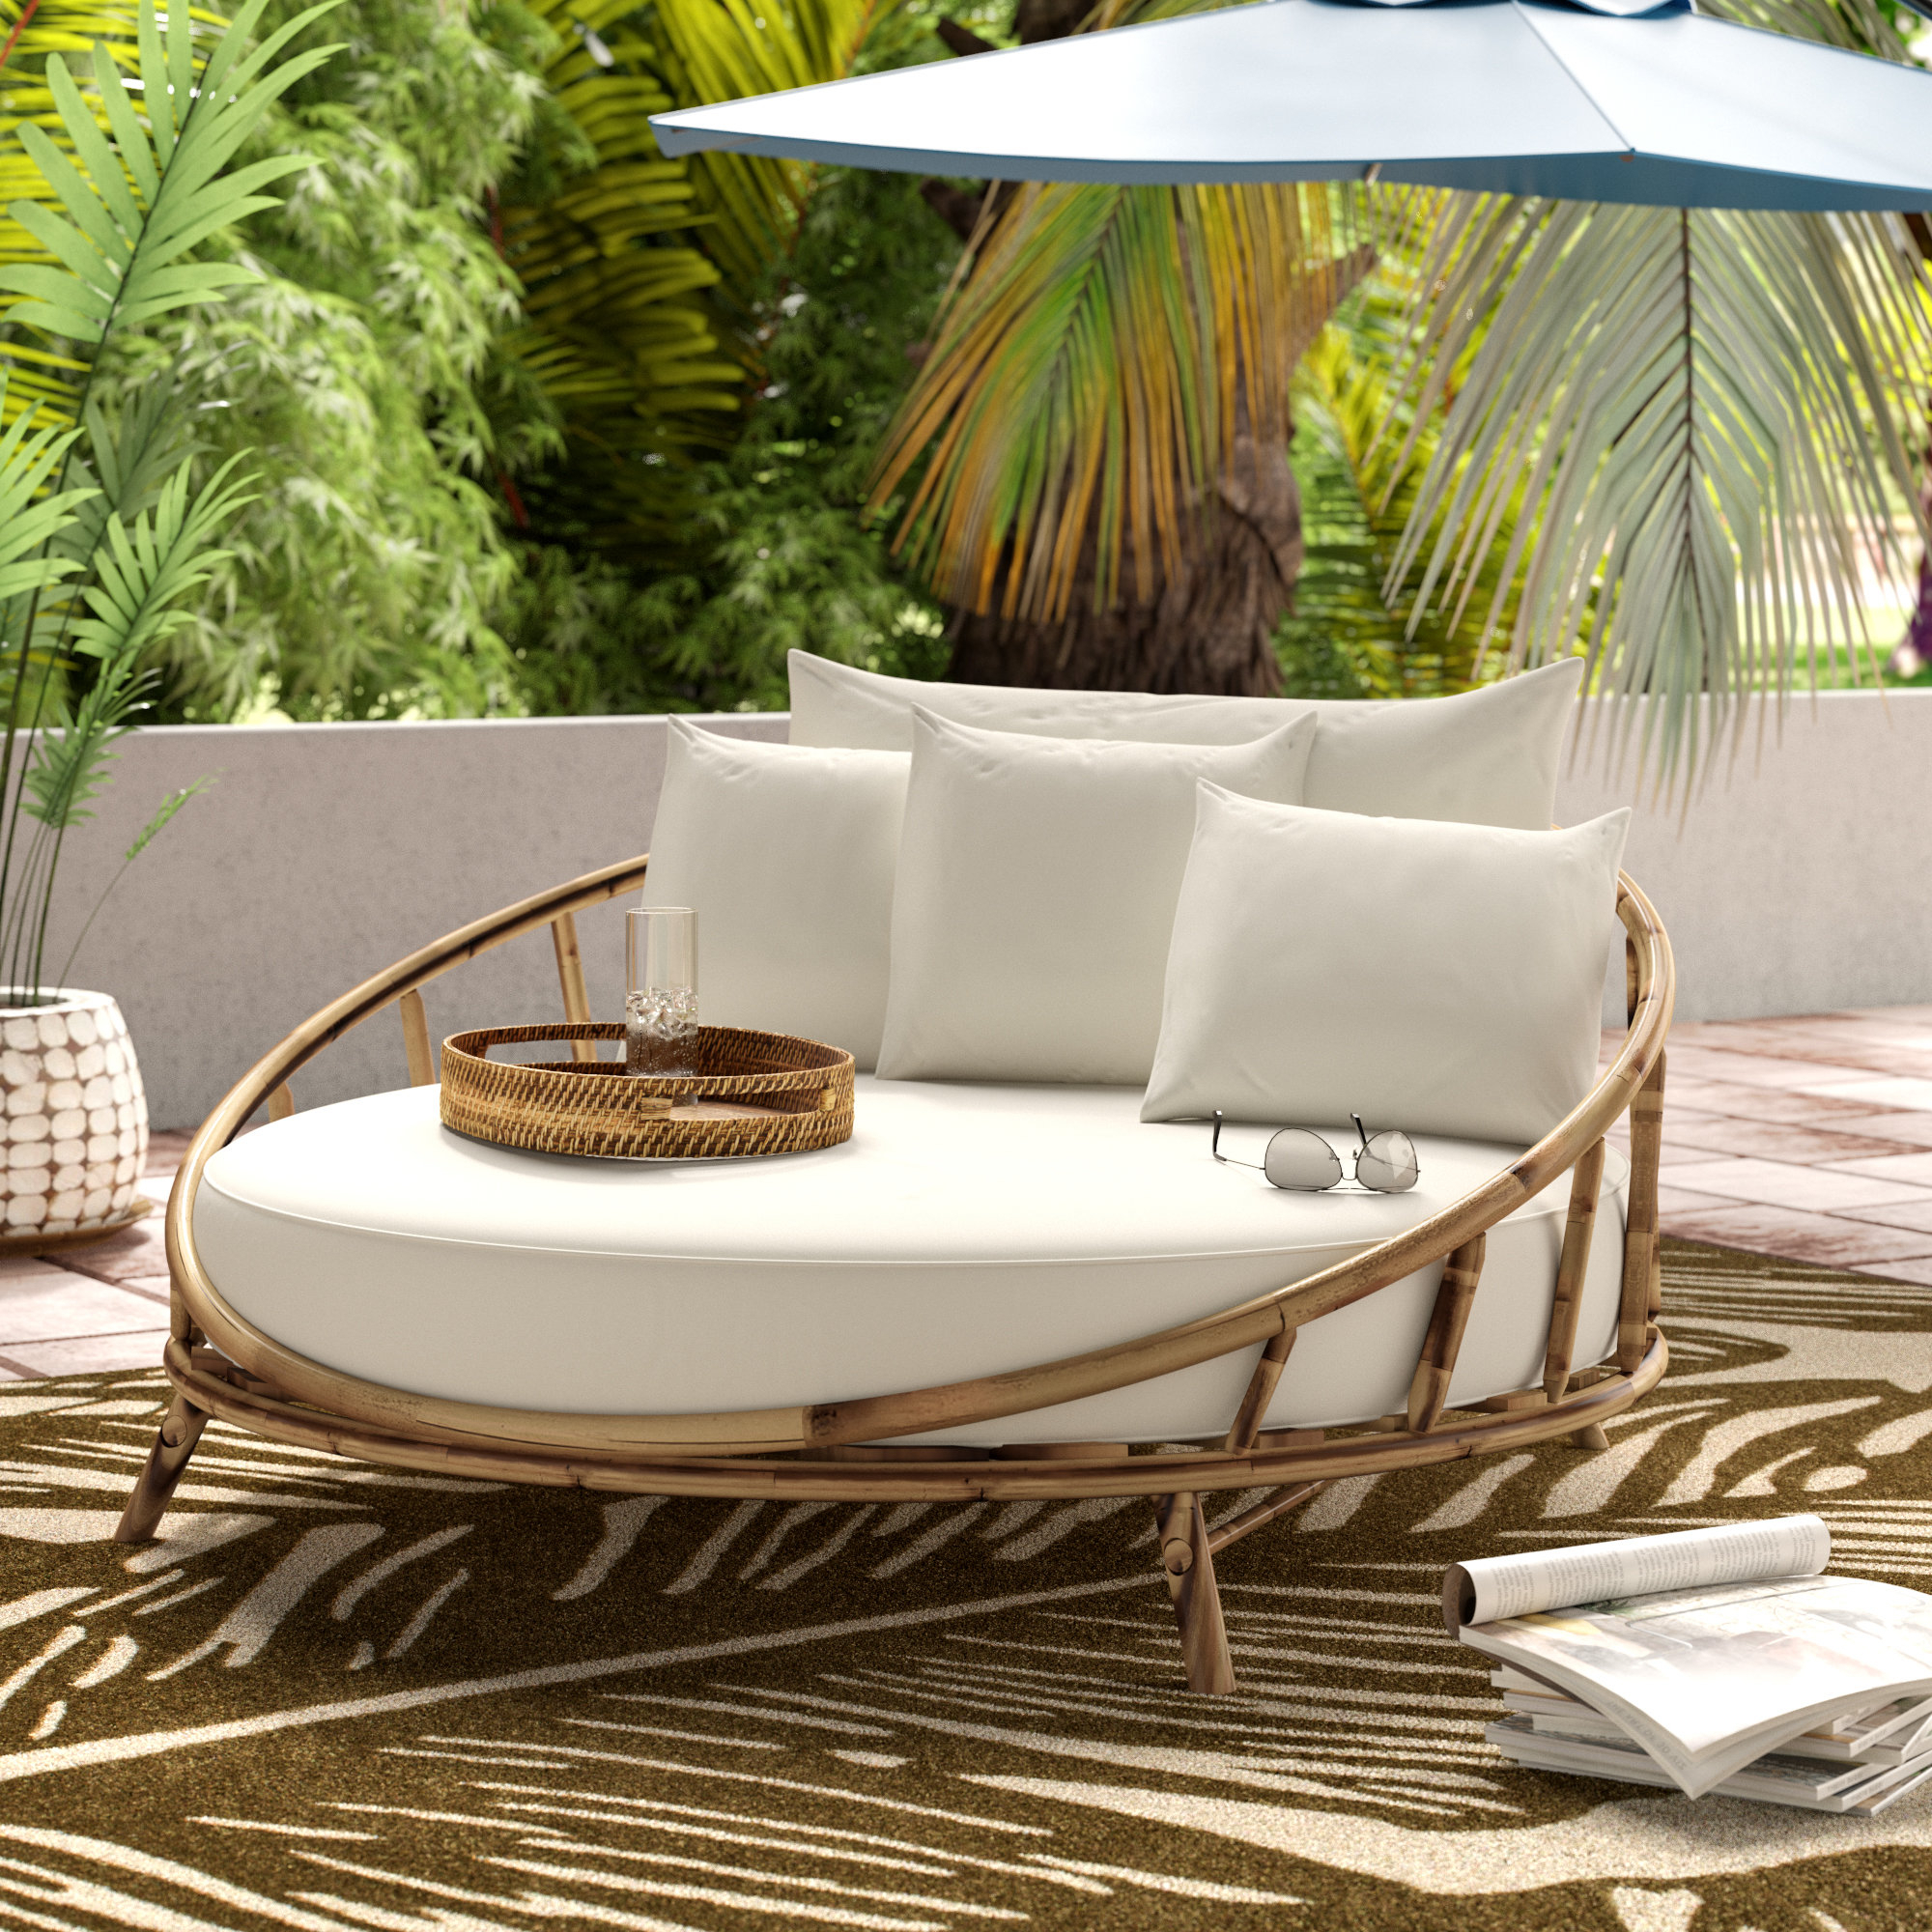 Famous Patio Daybeds With Cushions Regarding Bayou Breeze Olu Bamboo Large Round Patio Daybed With (View 6 of 20)